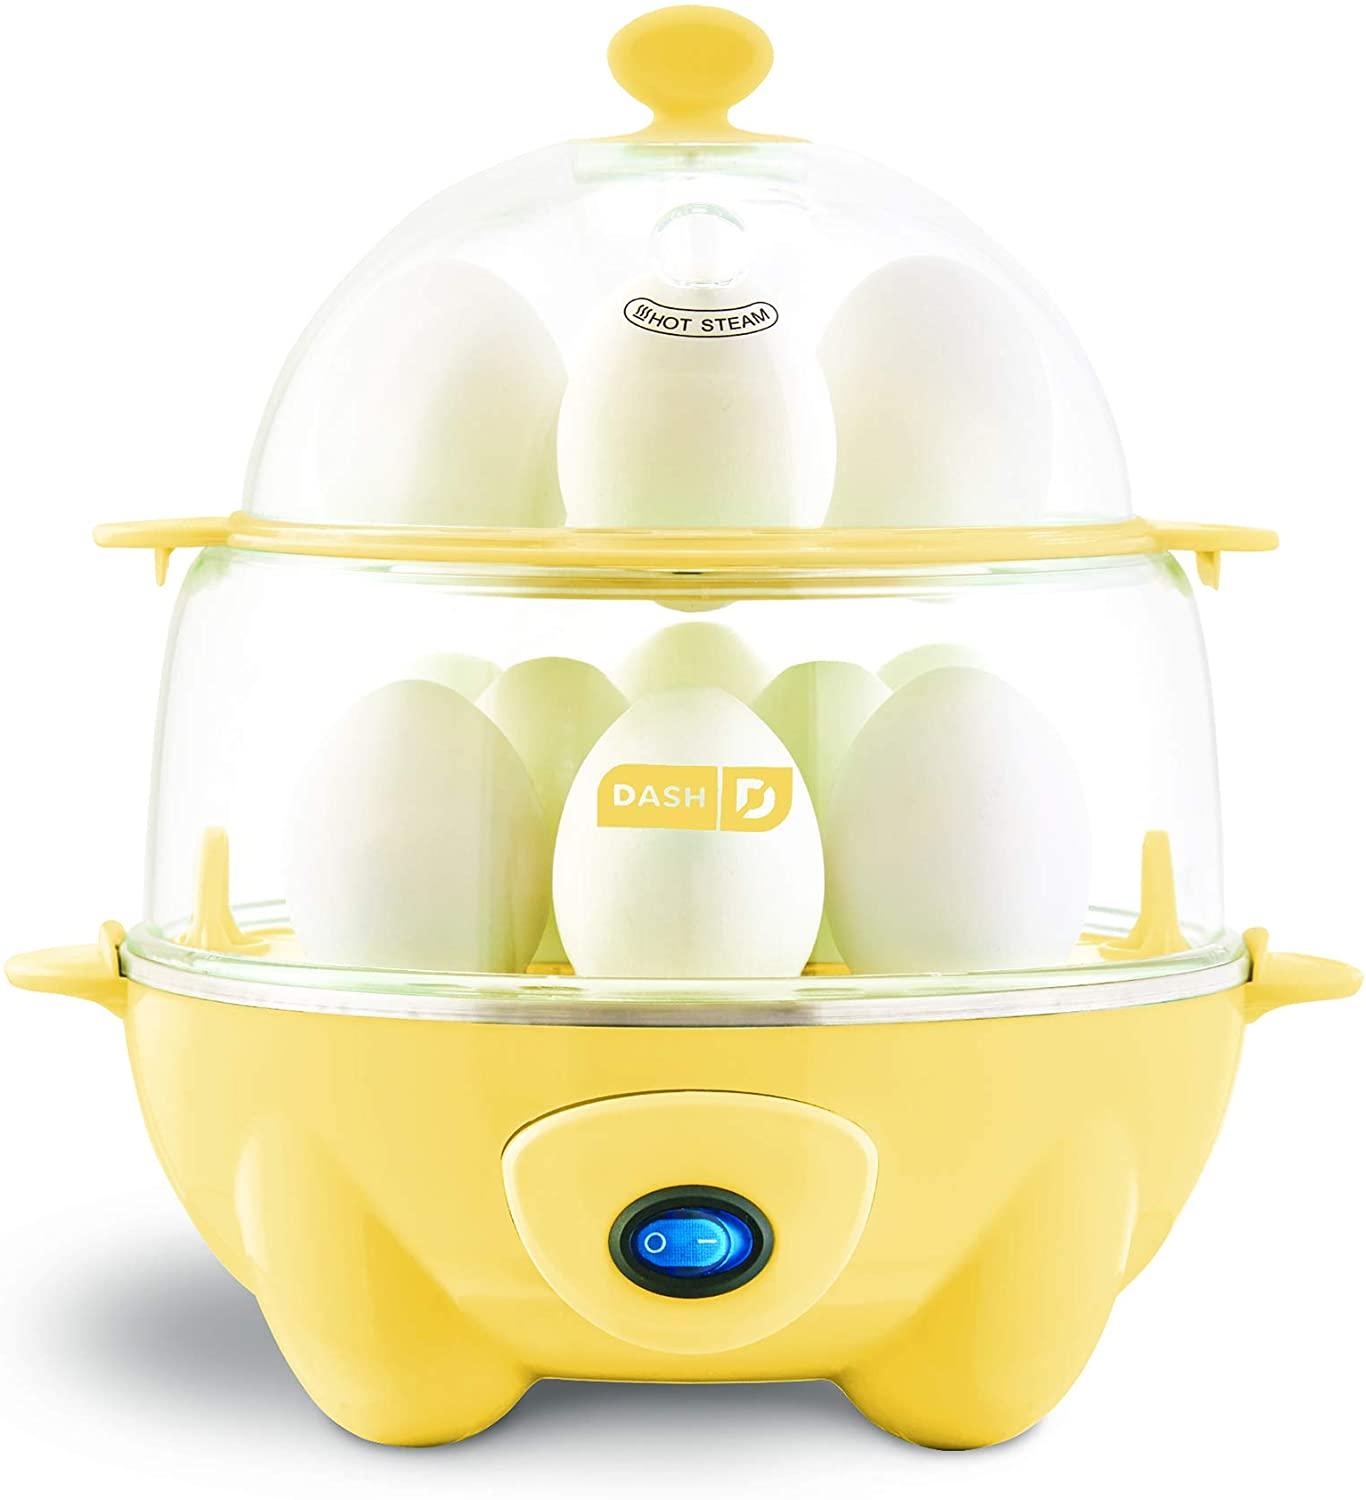 DASH DEC012PY Deluxe Rapid Egg Cooker: Electric, 12 Capacity for Hard Boiled, Poached, Scrambled, Omelets, Steamed Vegetables, Seafood, Dumplings & More with Auto Shut Off Feature, Yellow